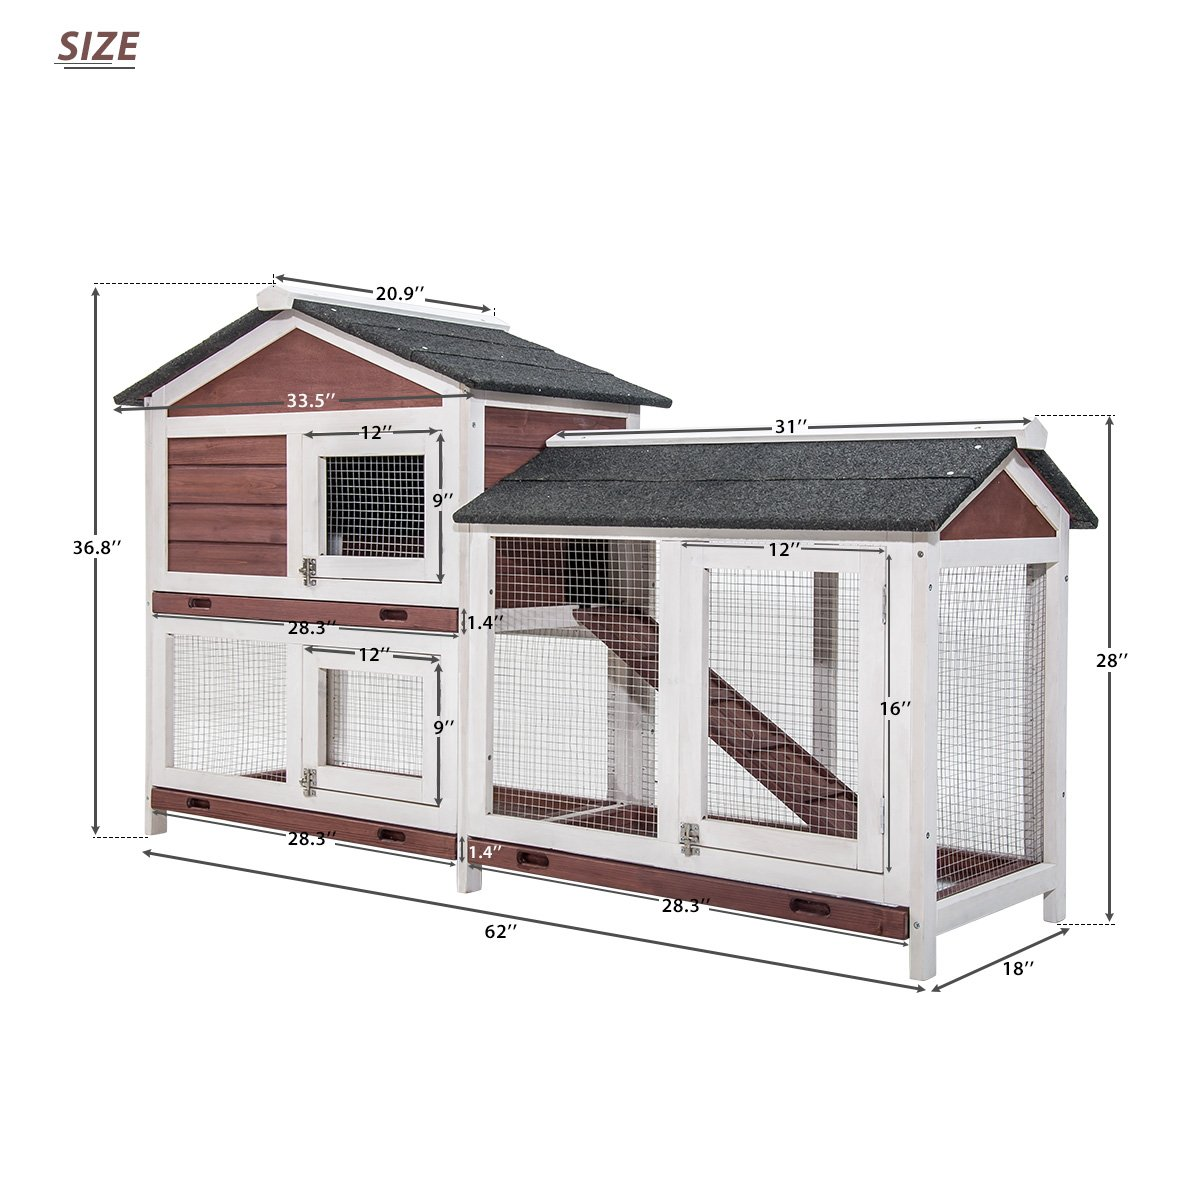 Purlove Pet Rabbit Hutch Wooden House Chicken Coop for Small Animals (Rabbit Hutch #4) by Purlove (Image #6)